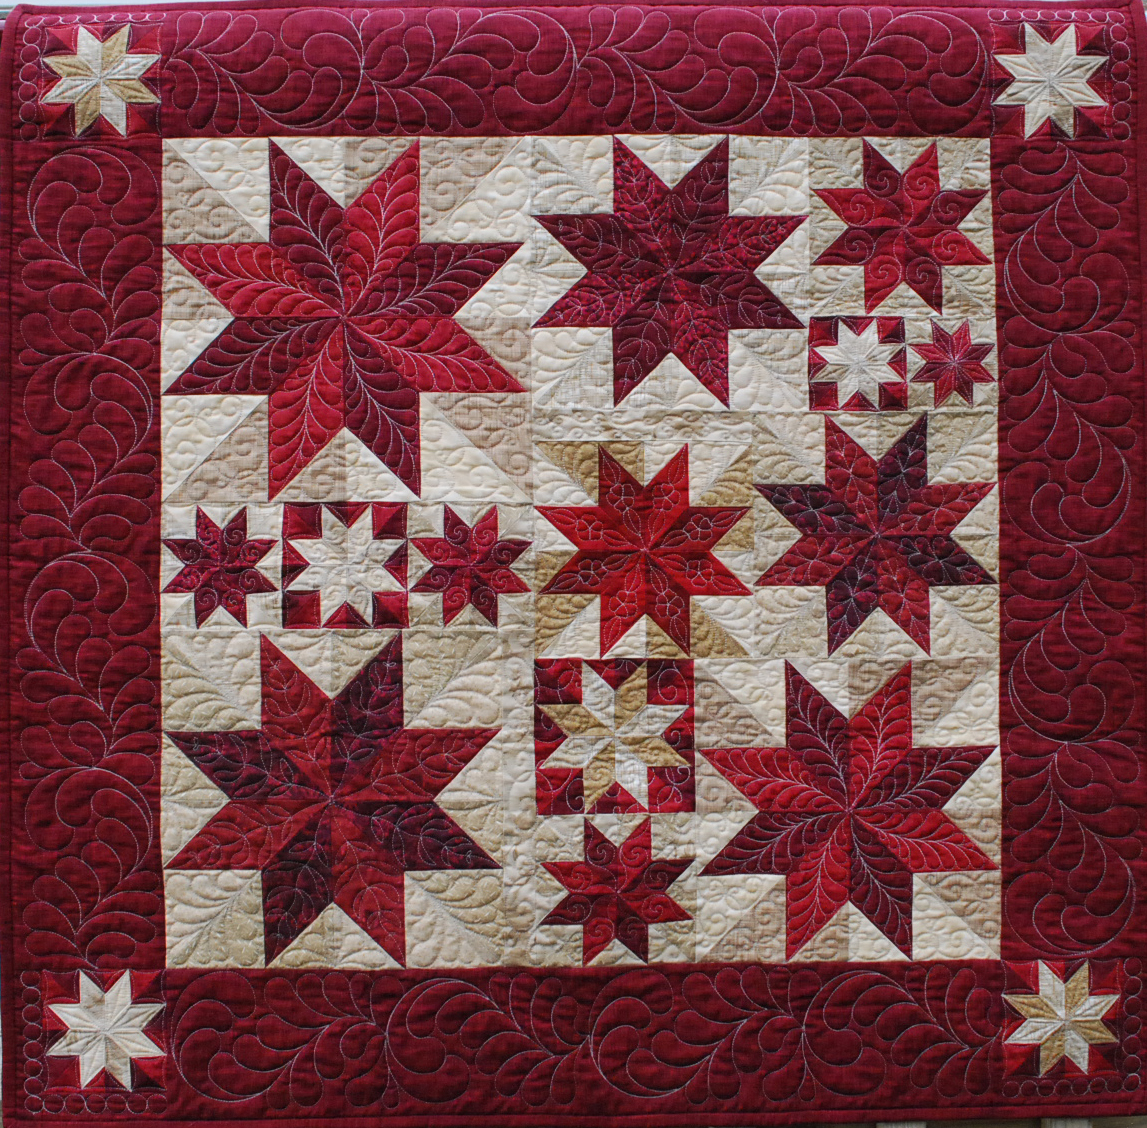 North Star Longarm Quilting ? Longarm quilting services and learning.